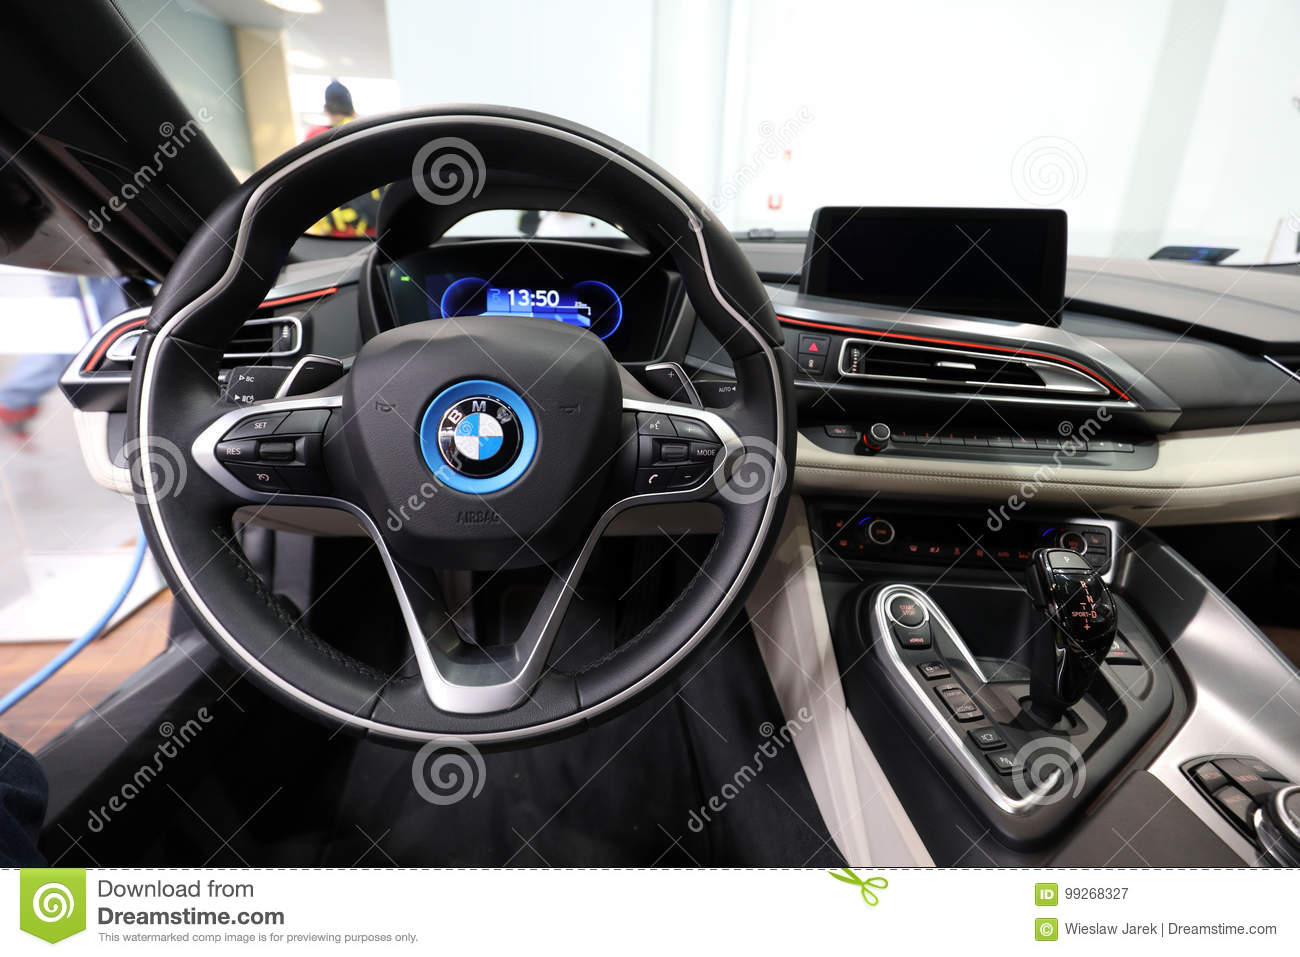 Interior Design Of Bmw I8 Displayed At Moto Show In Cracow Poland